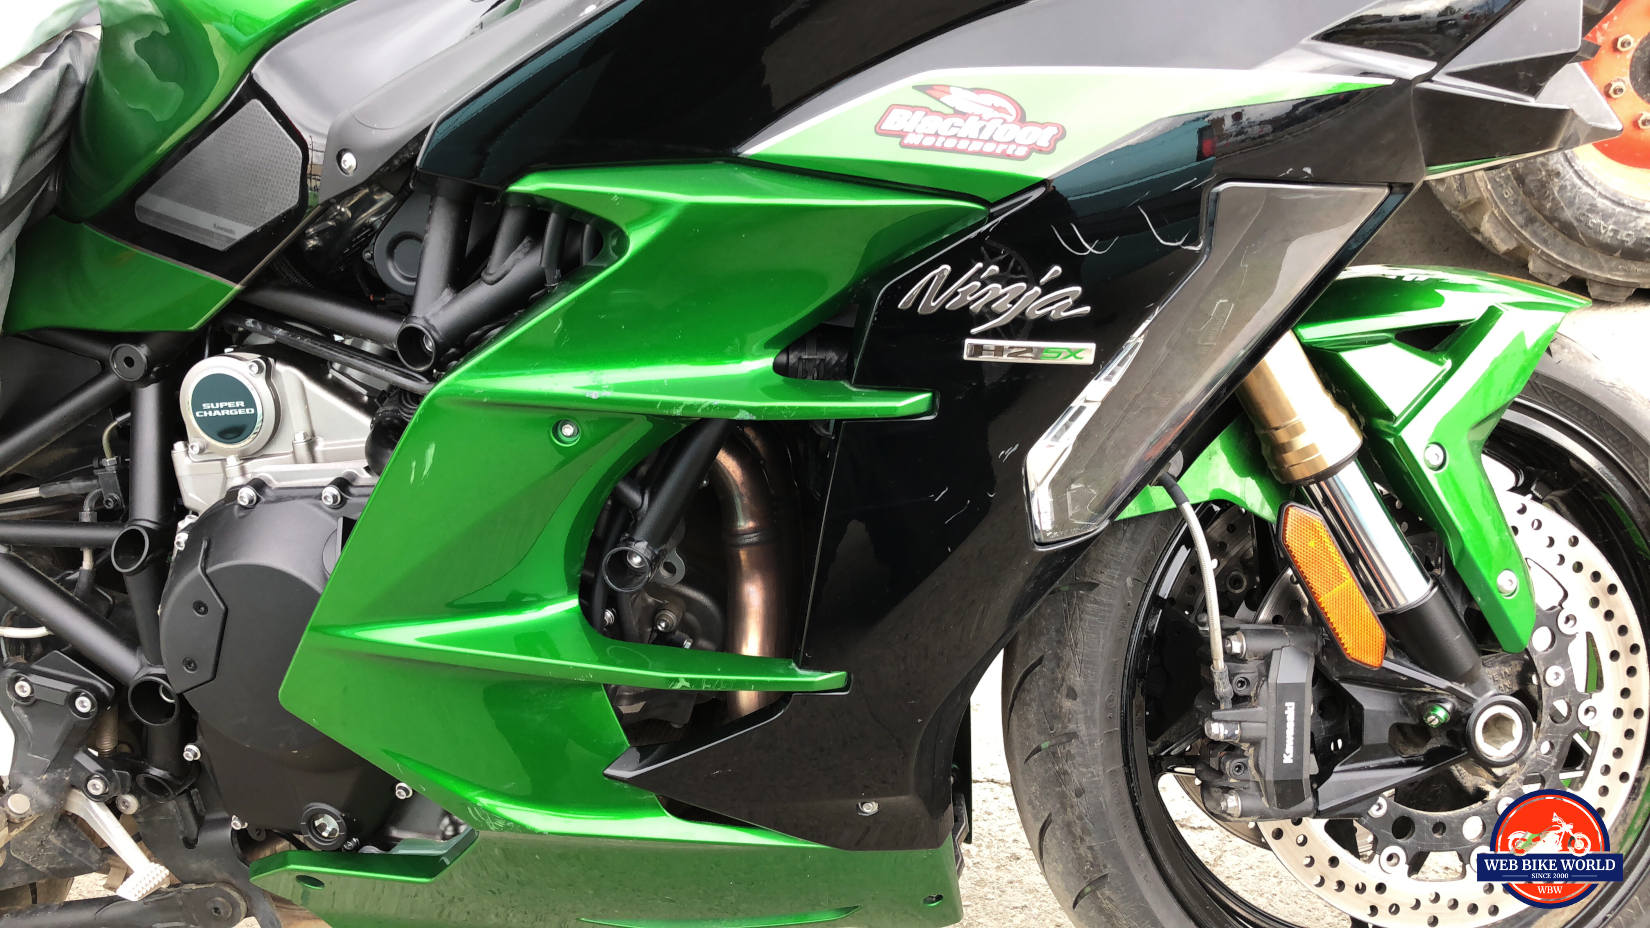 2018 Kawasaki Ninja H2SXSE right side fairing.